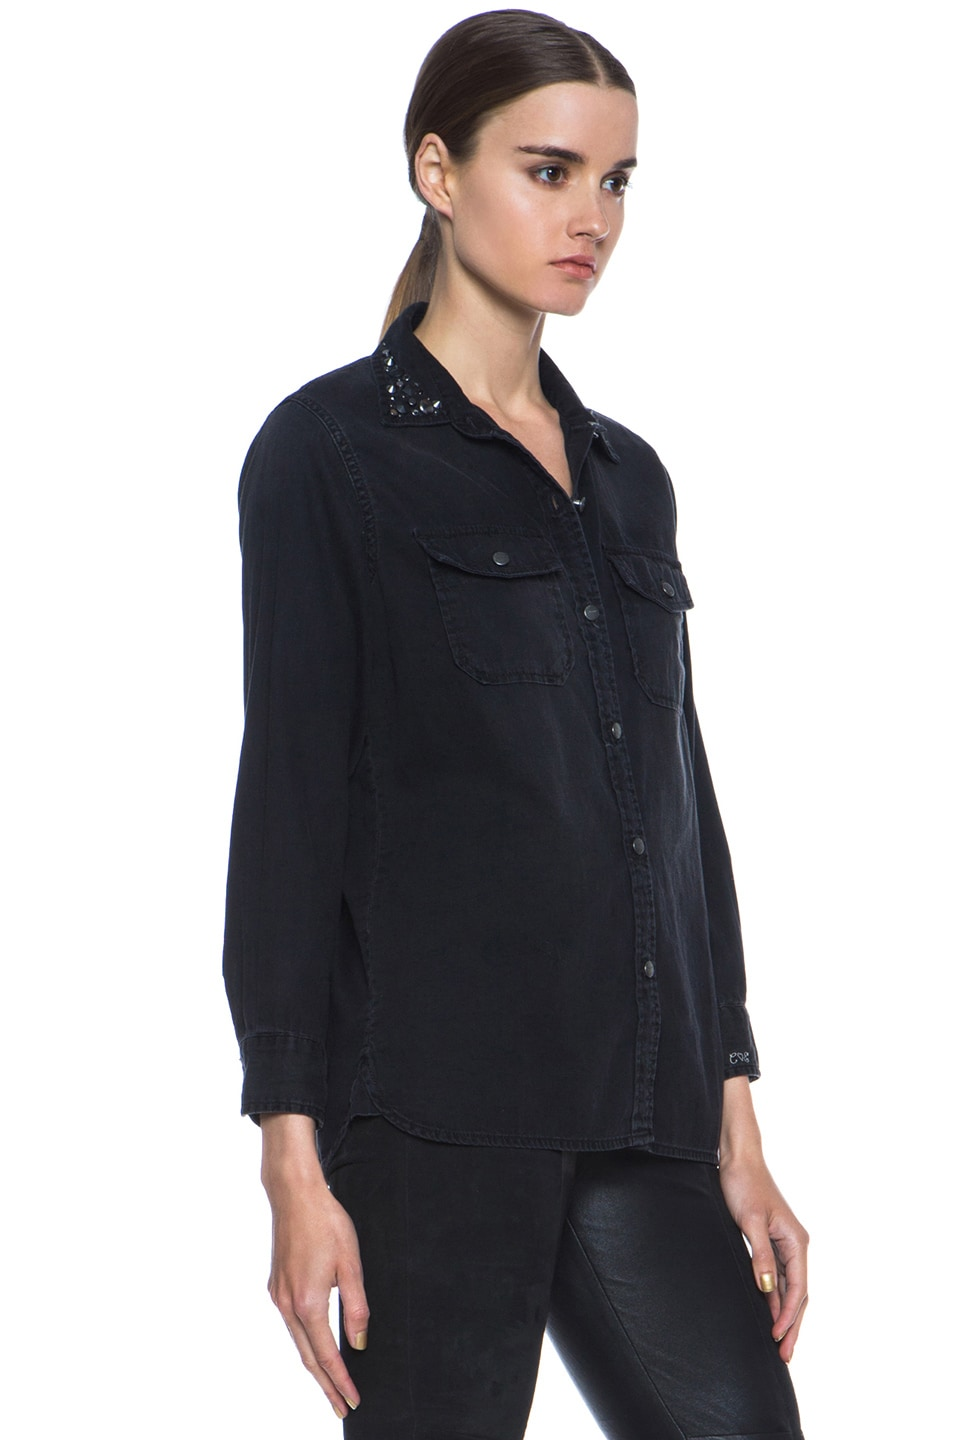 Image 3 of Current/Elliott Jean Perfect Shirt Without Epaulettes in Black & Jet